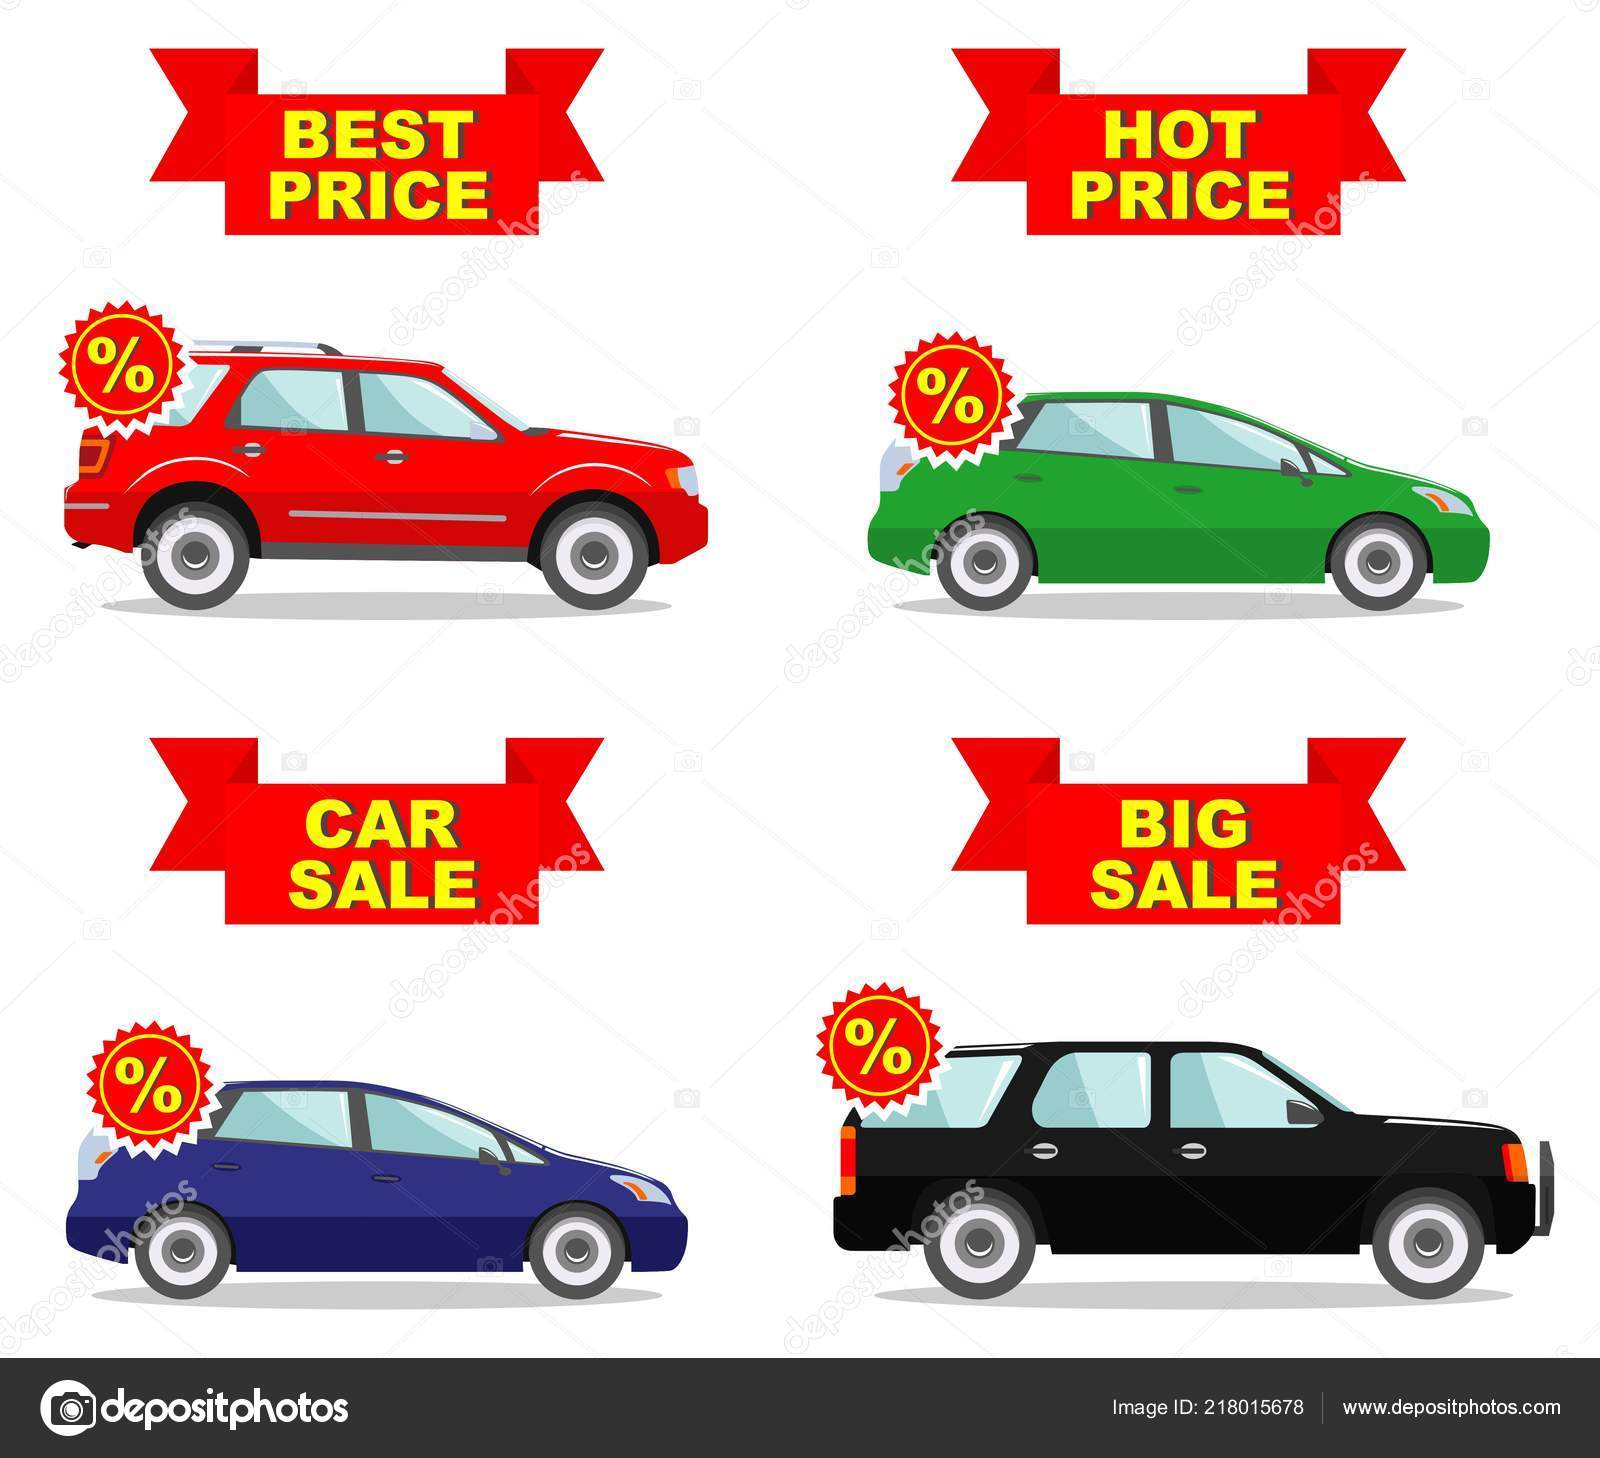 Cars Price Car Showroom Big Sale Hot Price Best Price Set Discount Stock